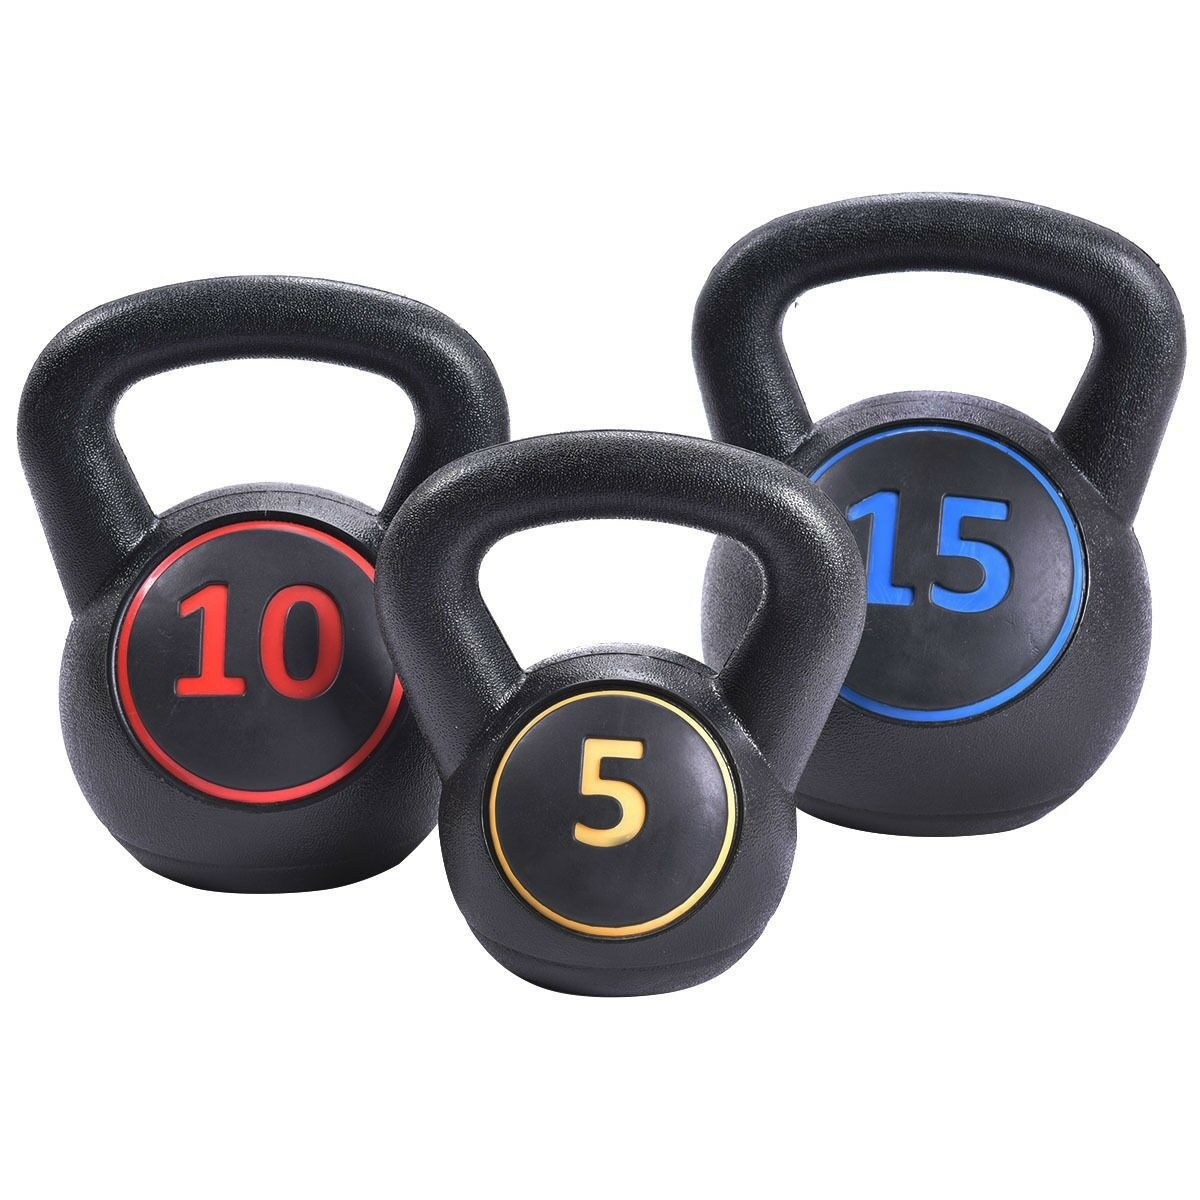 3 Pcs Sport Yoga Vinyl Kettlebell Kit Body  Muscles Home Gym Training Weights US  outlet on sale